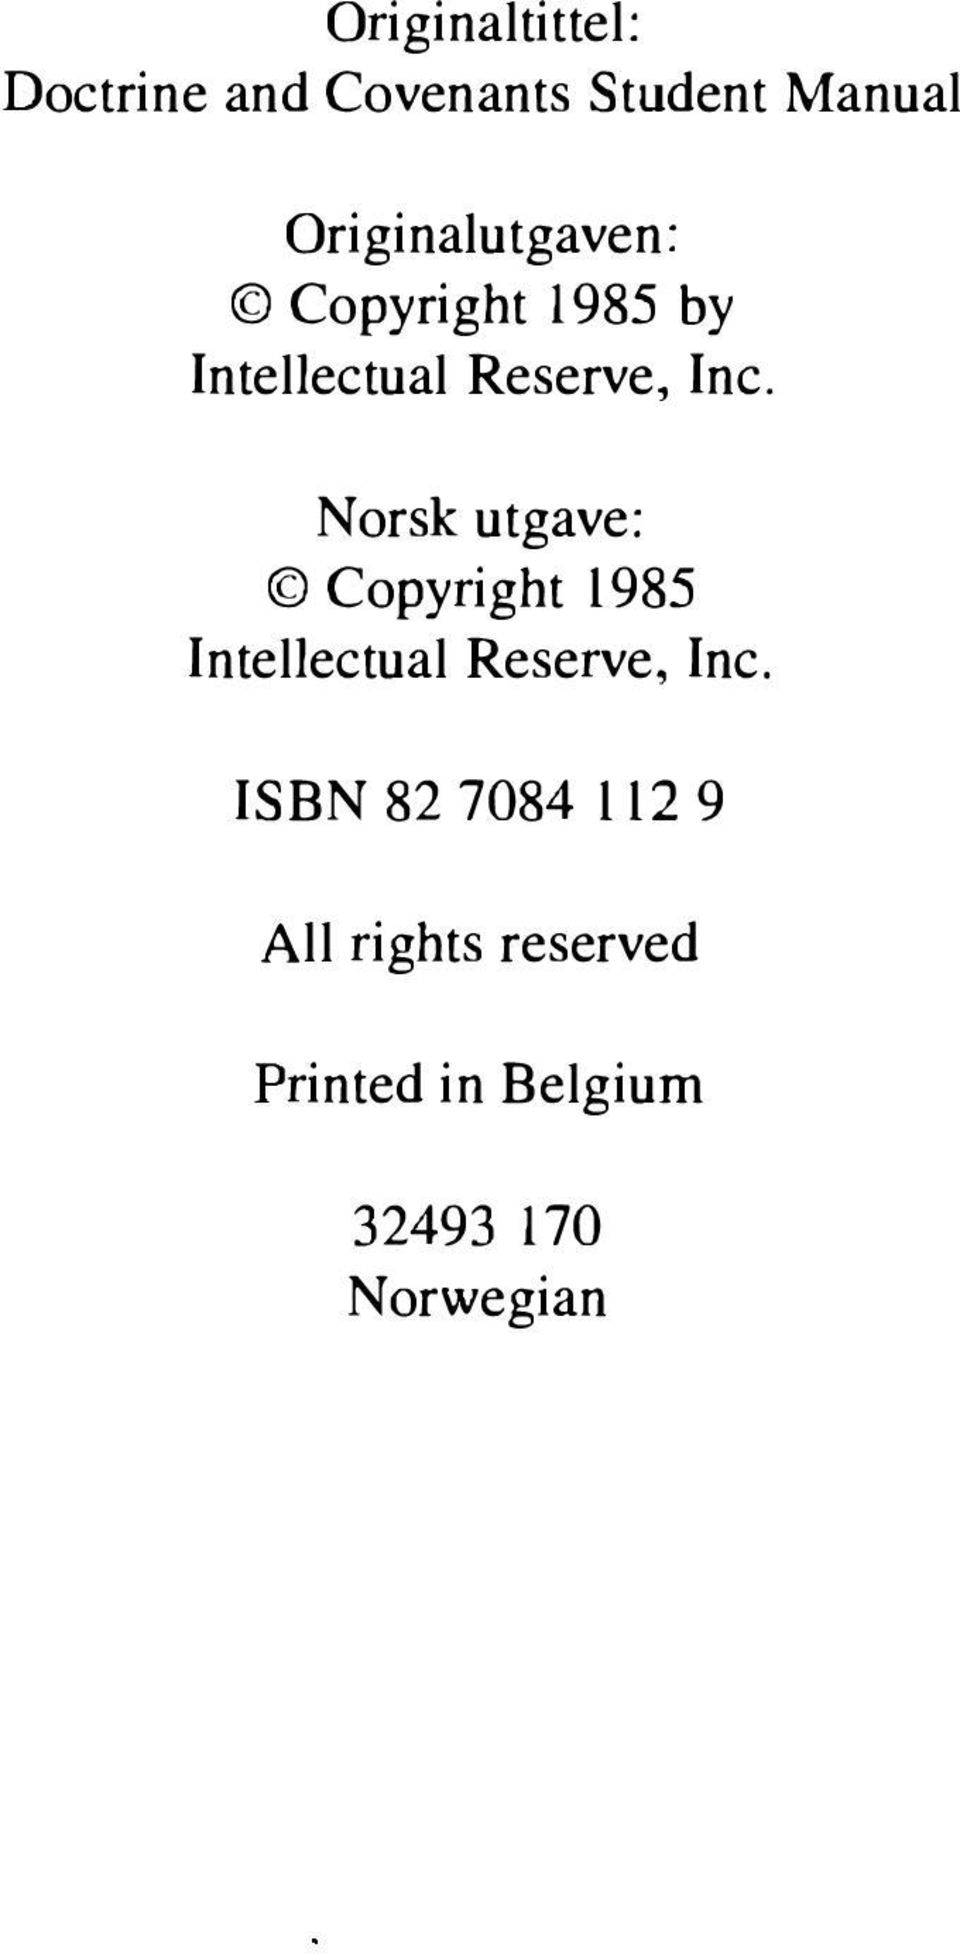 Norsk utgave: Copyright 1985 Intellectual Reserve, Inc.